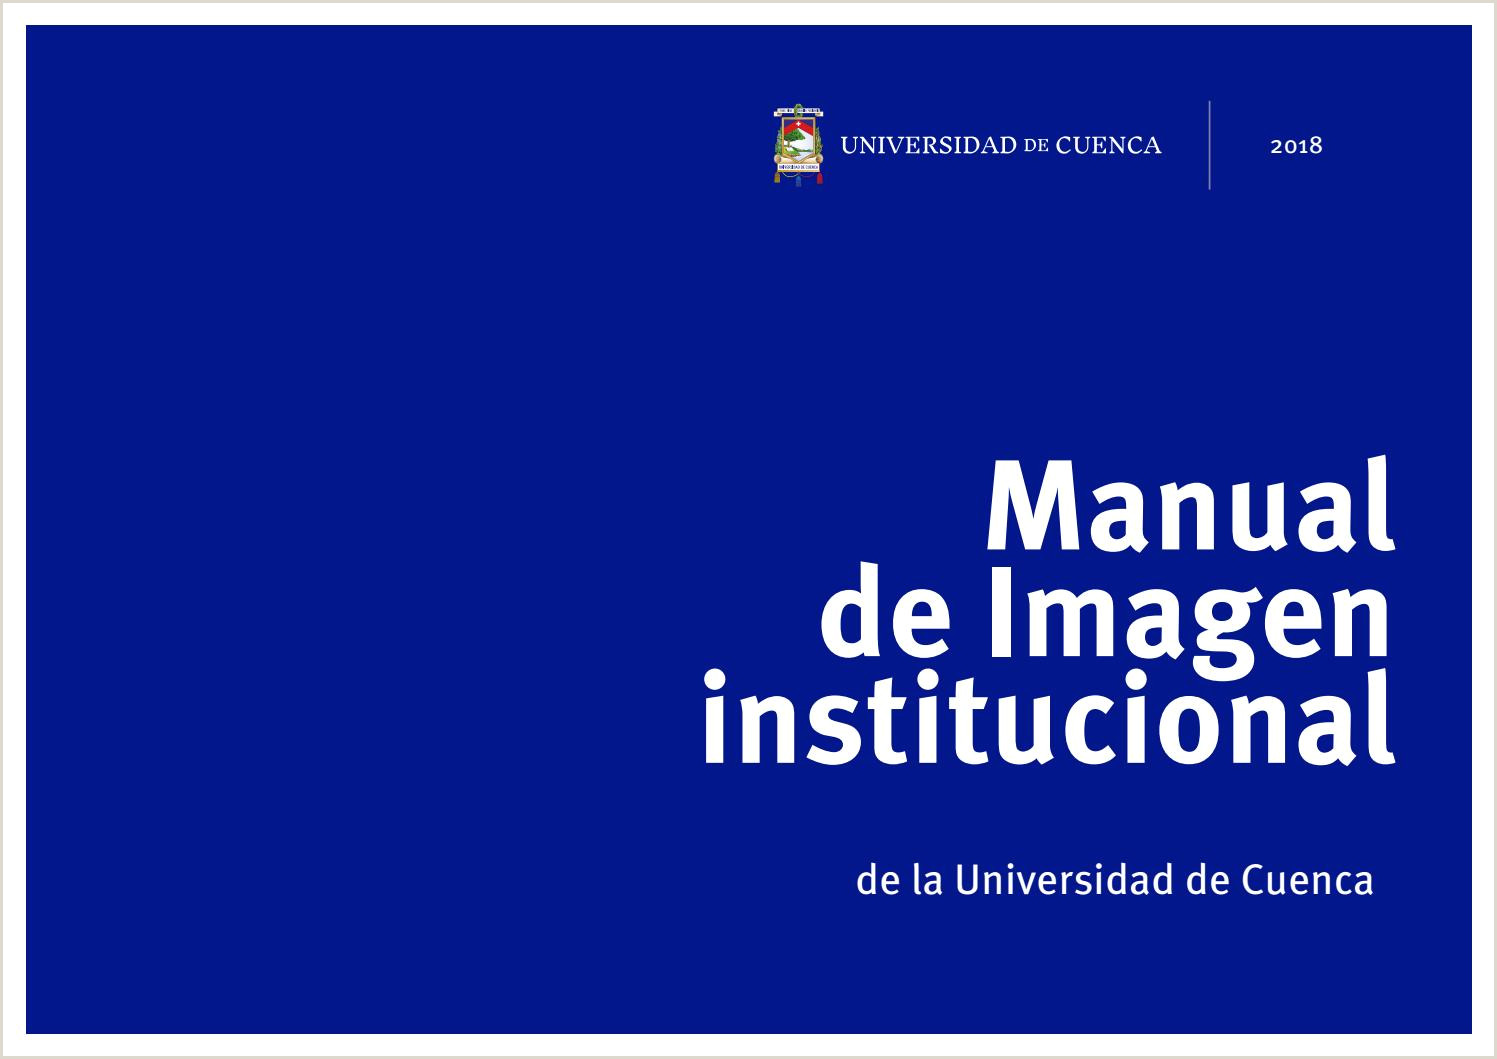 Manual de Imagen Institucional by unicaci³n Universidad